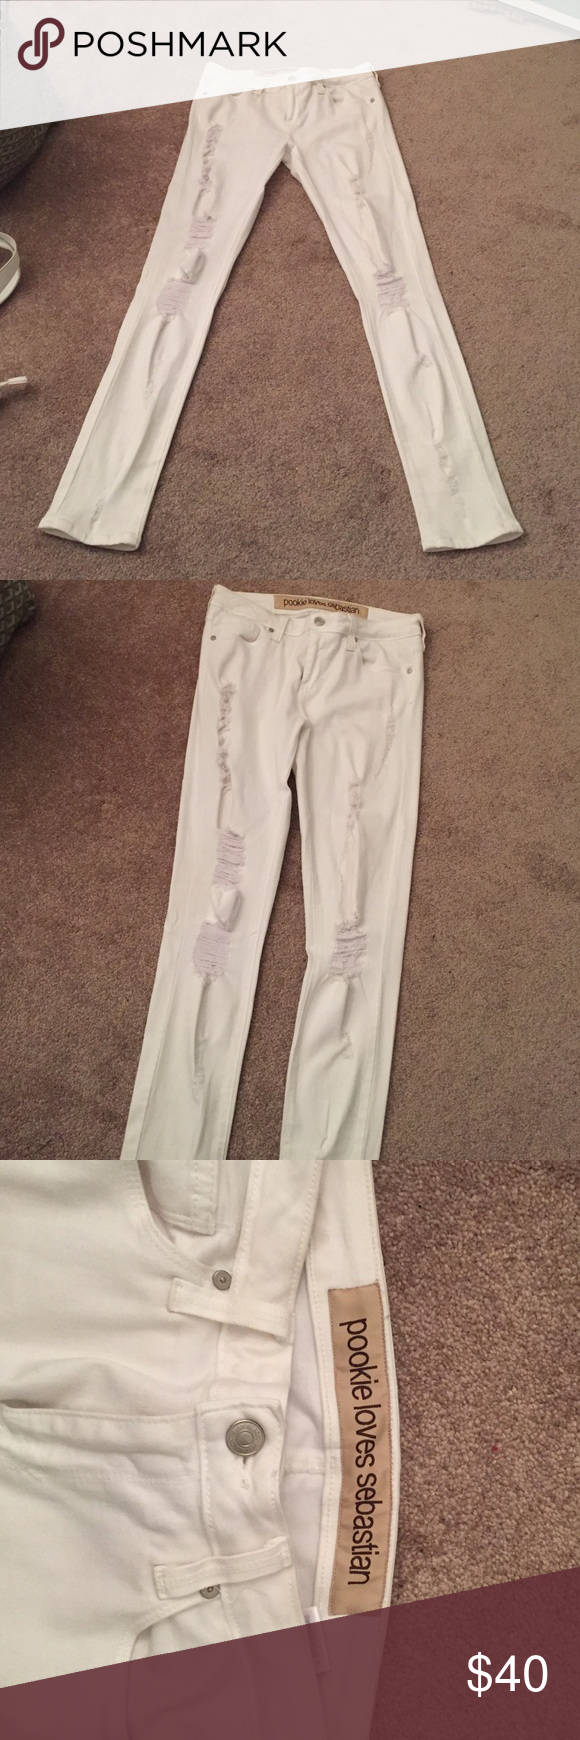 Pookie and Sebastian super skinny destroyed jeans A must have for that Gigi Hadid model off duty look! Very distressed. I tried them on once and they didn't fit so I'm selling. NWOT. Purchased at Pookie and Sebastian in NYC. Pookie and Sebastian Jeans Skinny